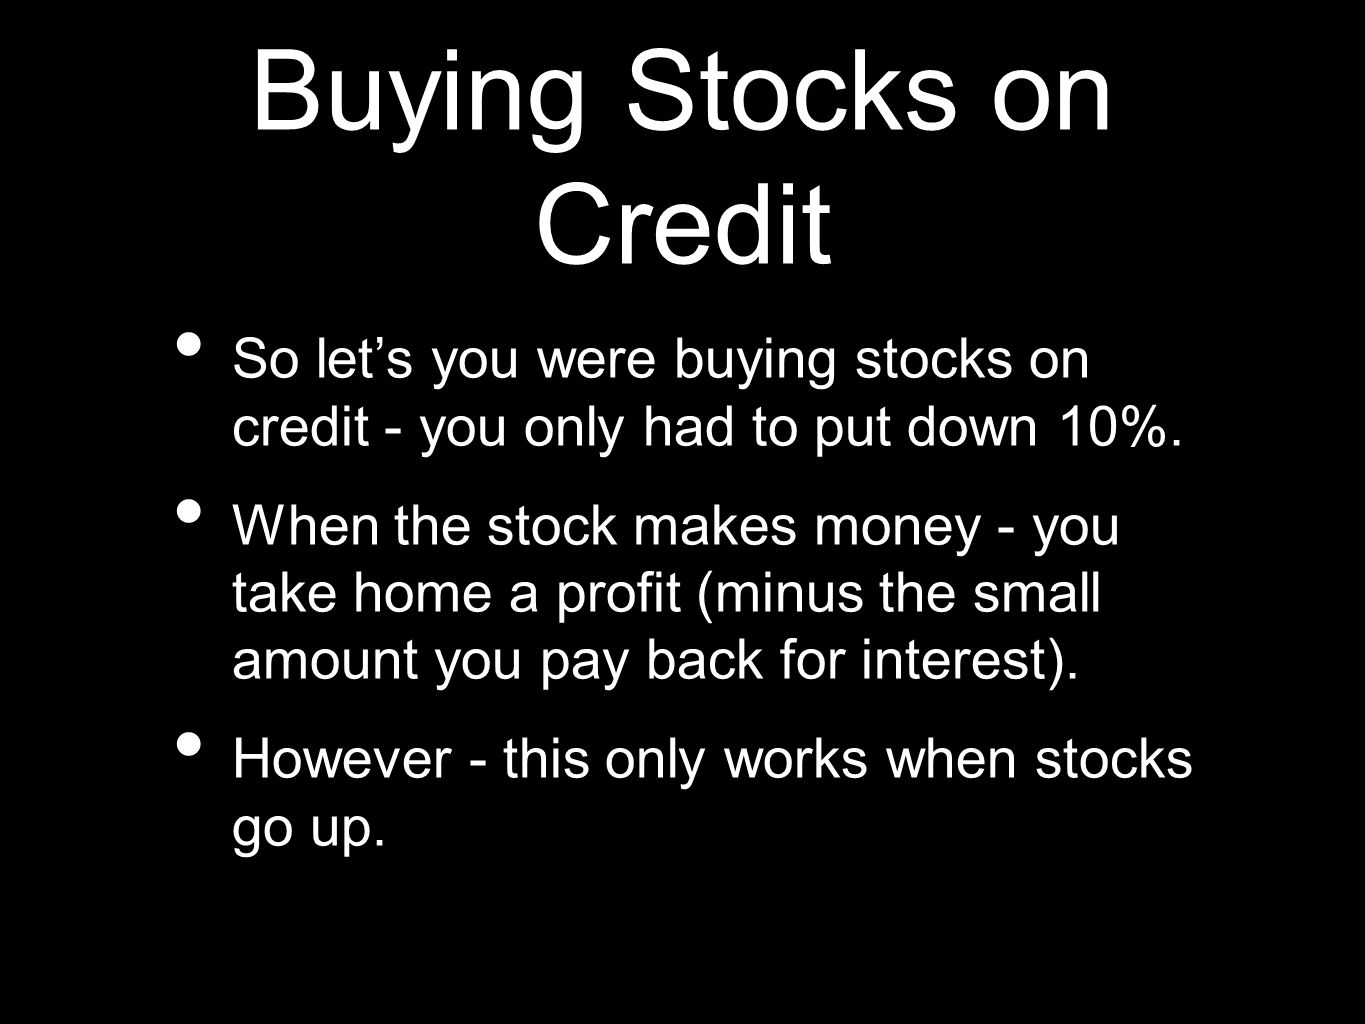 Buying Stocks on Credit So lets you were buying stocks on credit - you only had to put down 10%.